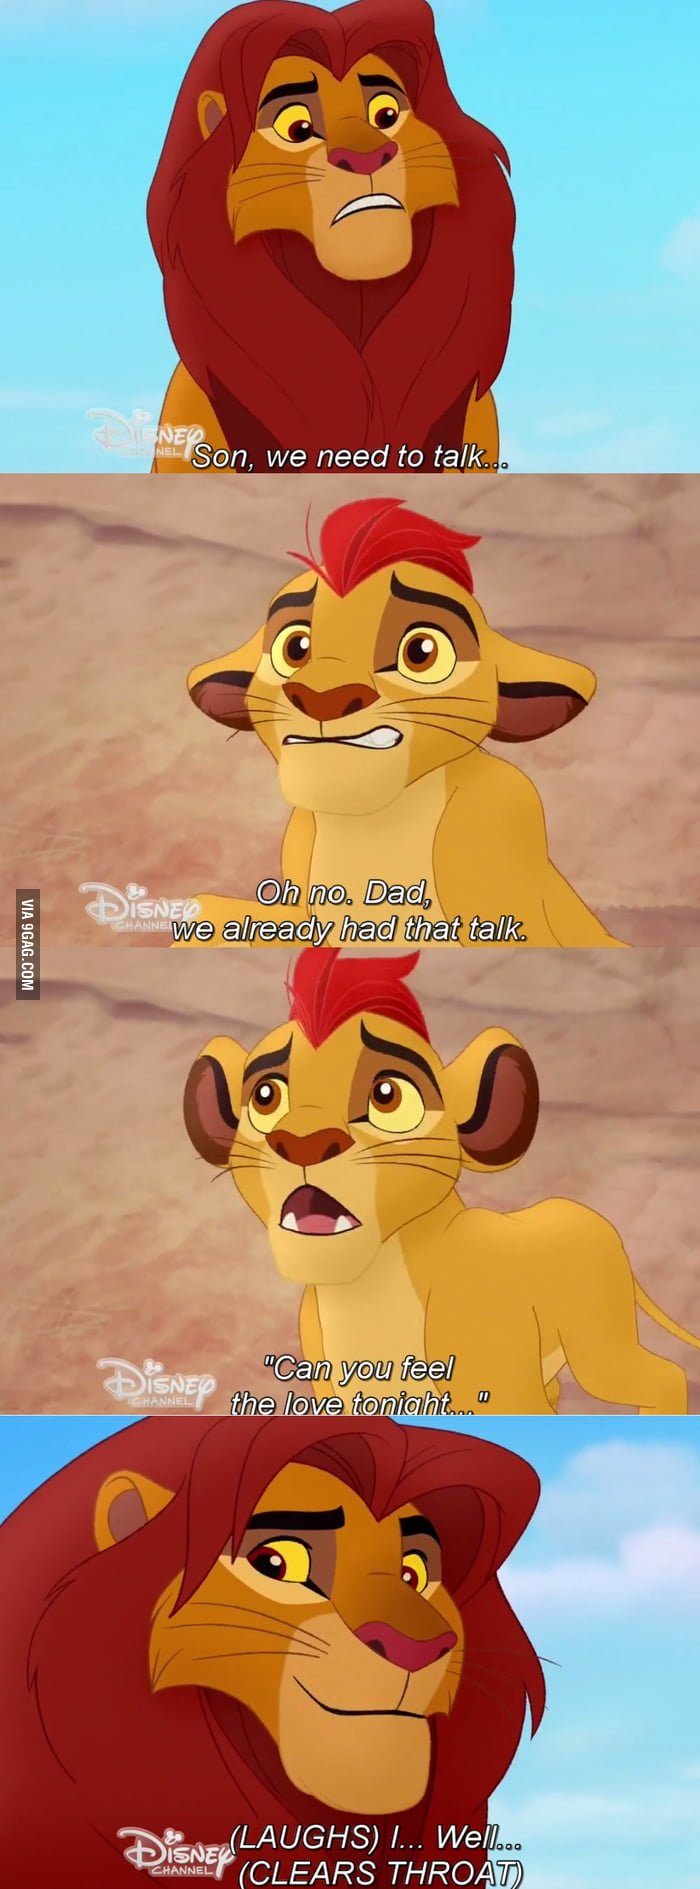 Simba talking about his sexy time with nala - 9GAG